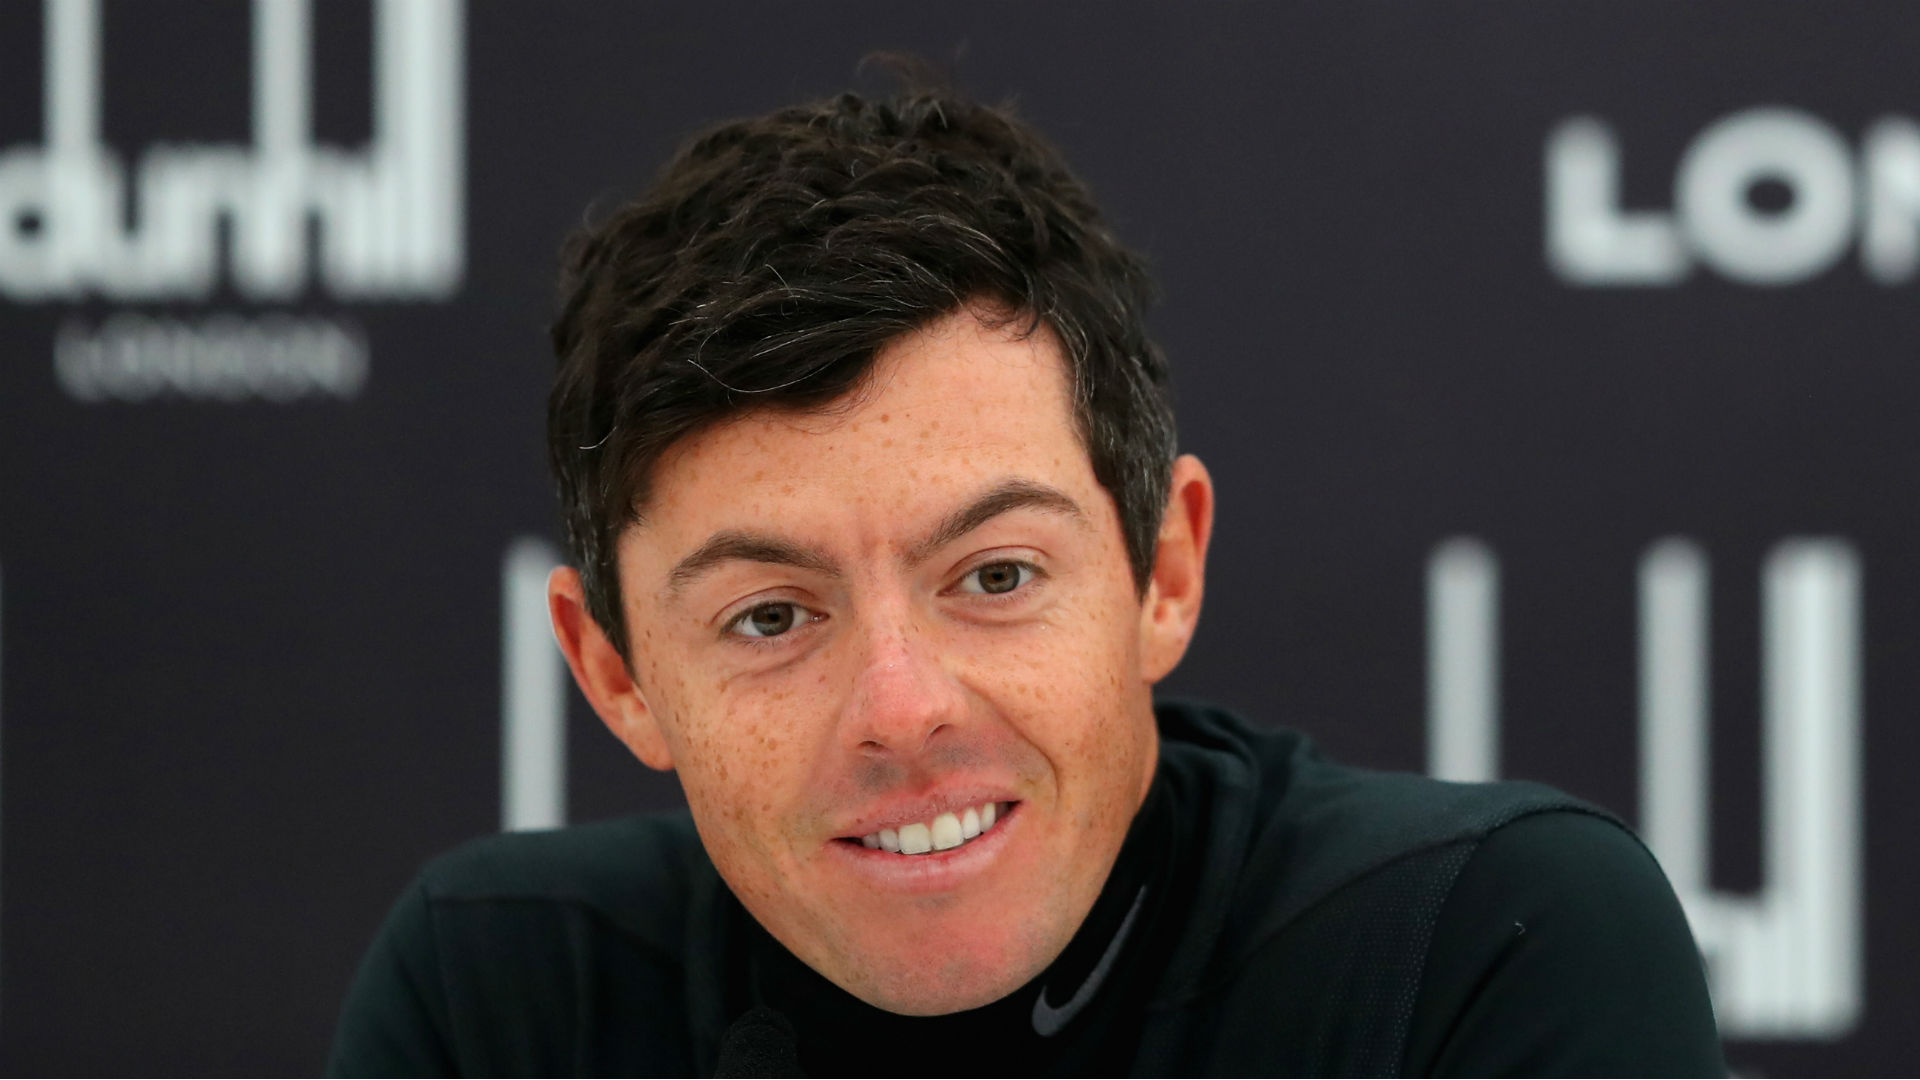 Rory McIlroy: Strength of U.S. team will make Ryder Cup sweeter for Europe 'when we win'